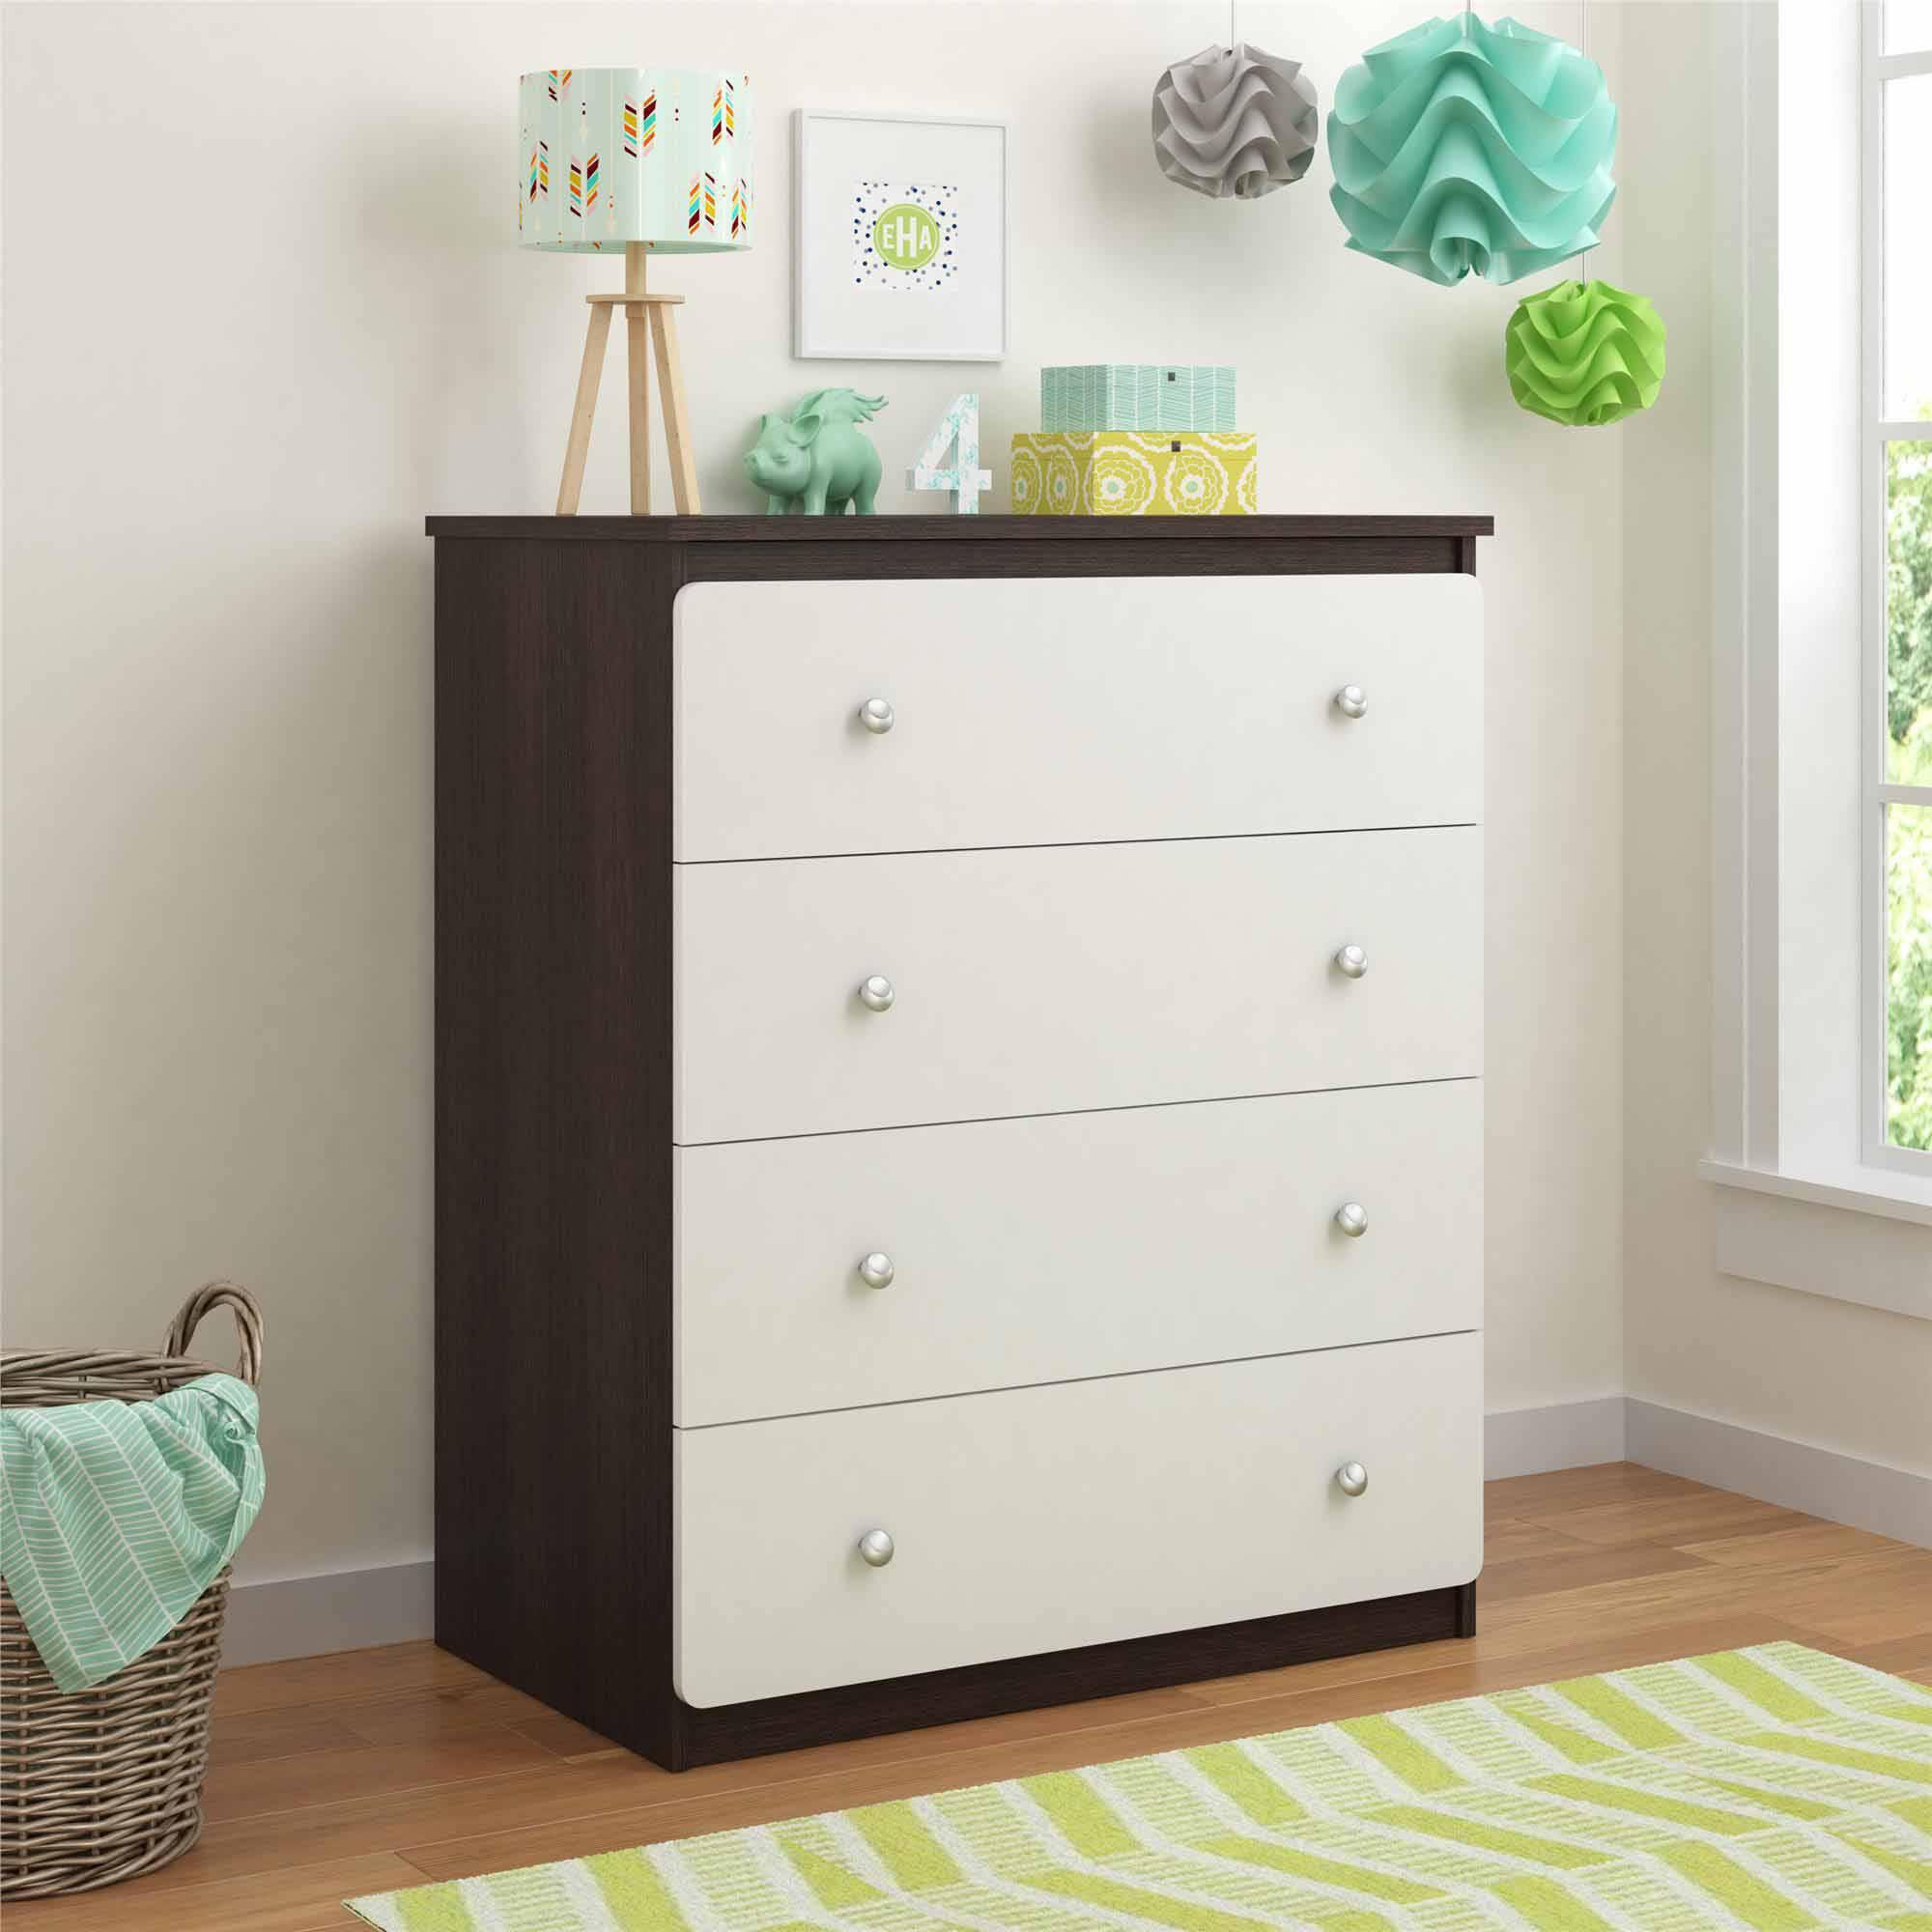 Cosco Willow Lake 4-Drawer Dresser, Coffee House Plank/White